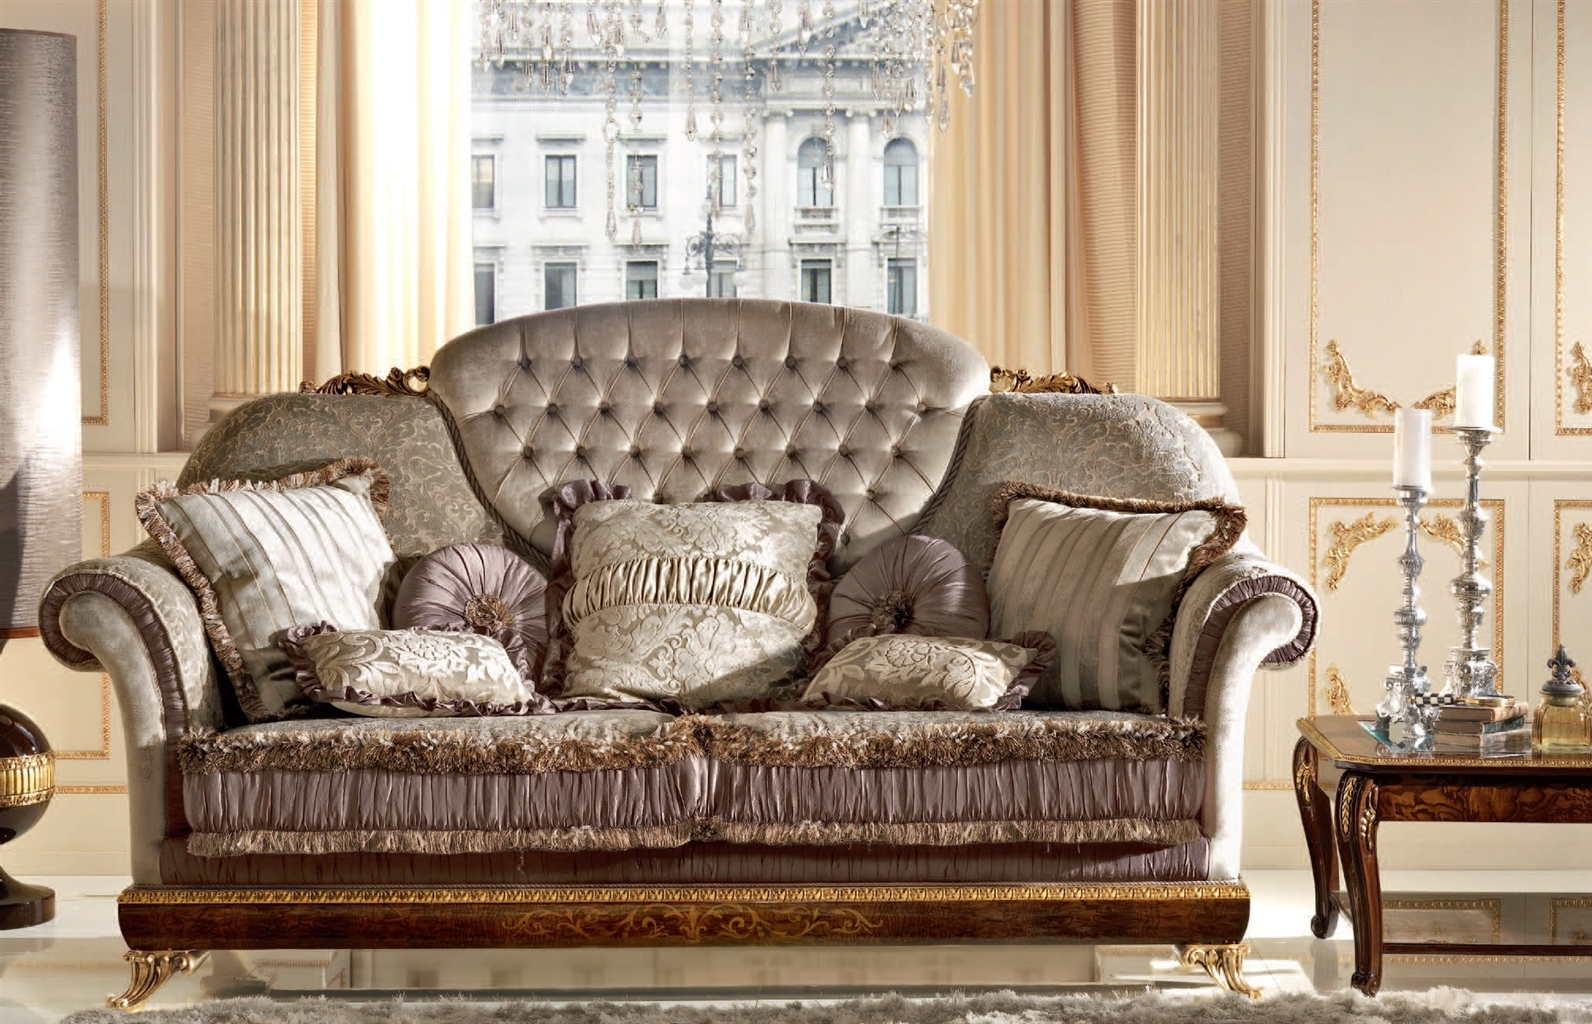 Royal Sofa For 3 People With Cushion